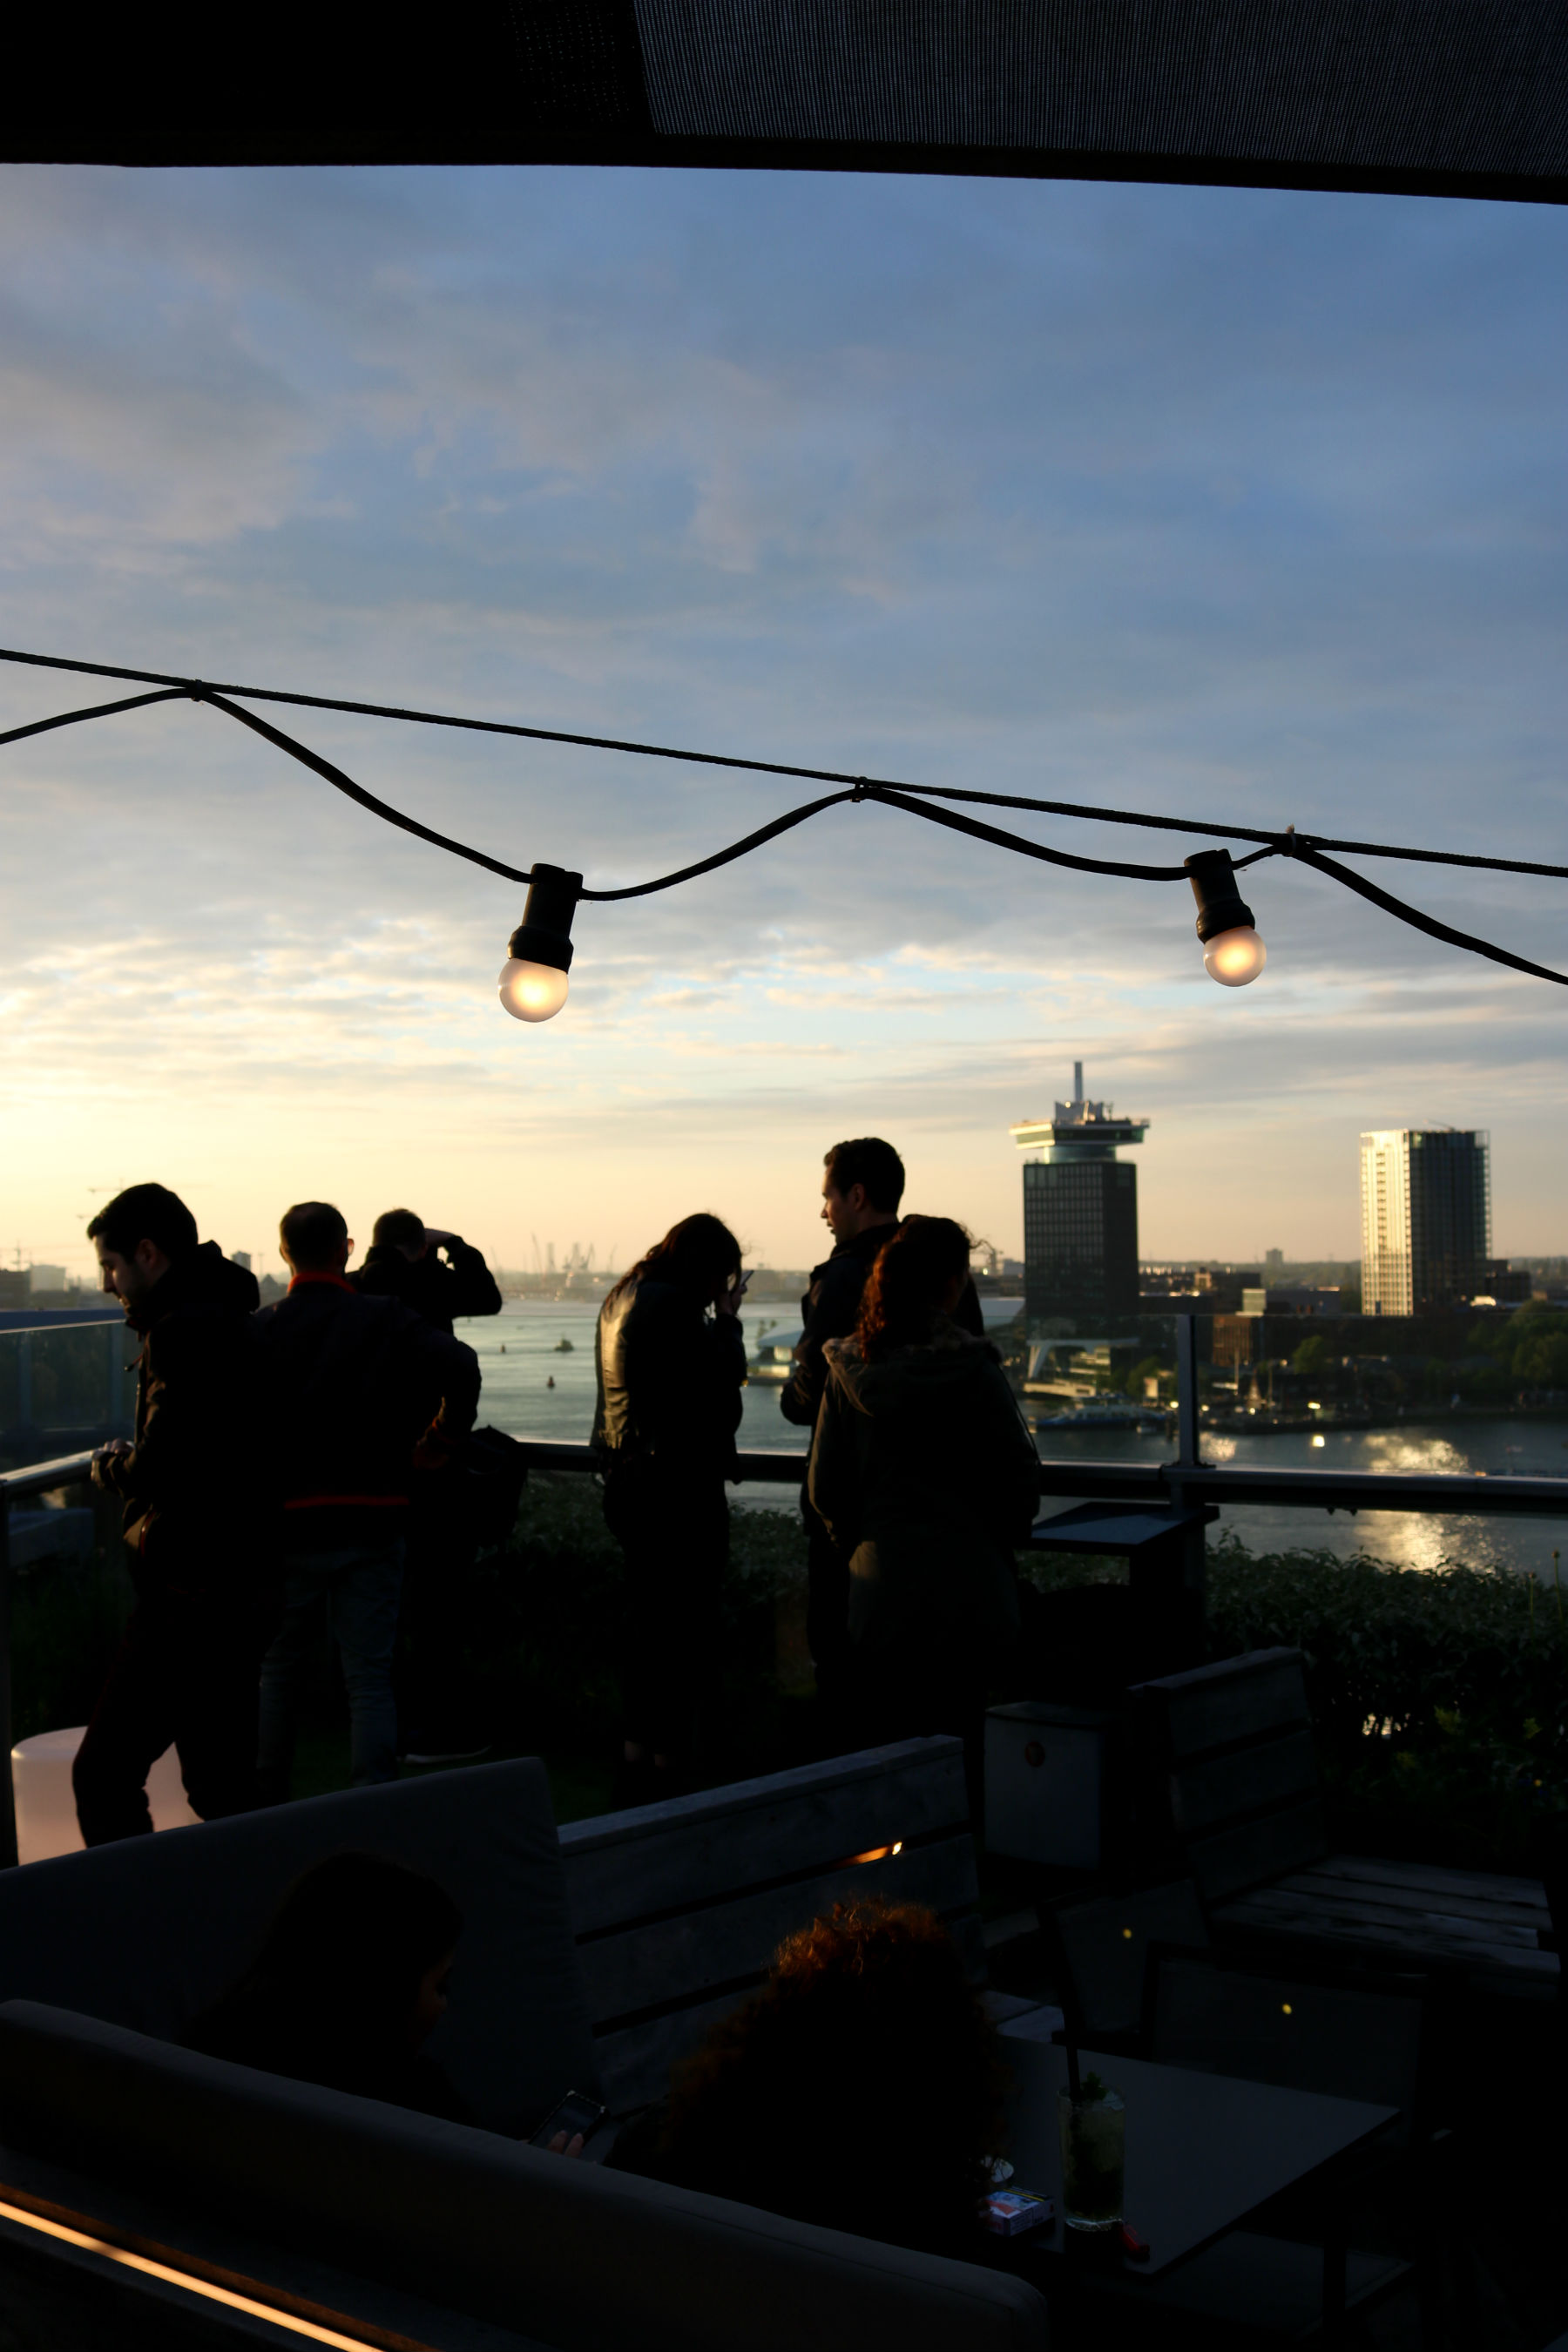 Group of people at Amsterdam SkyLounge rooftop bar